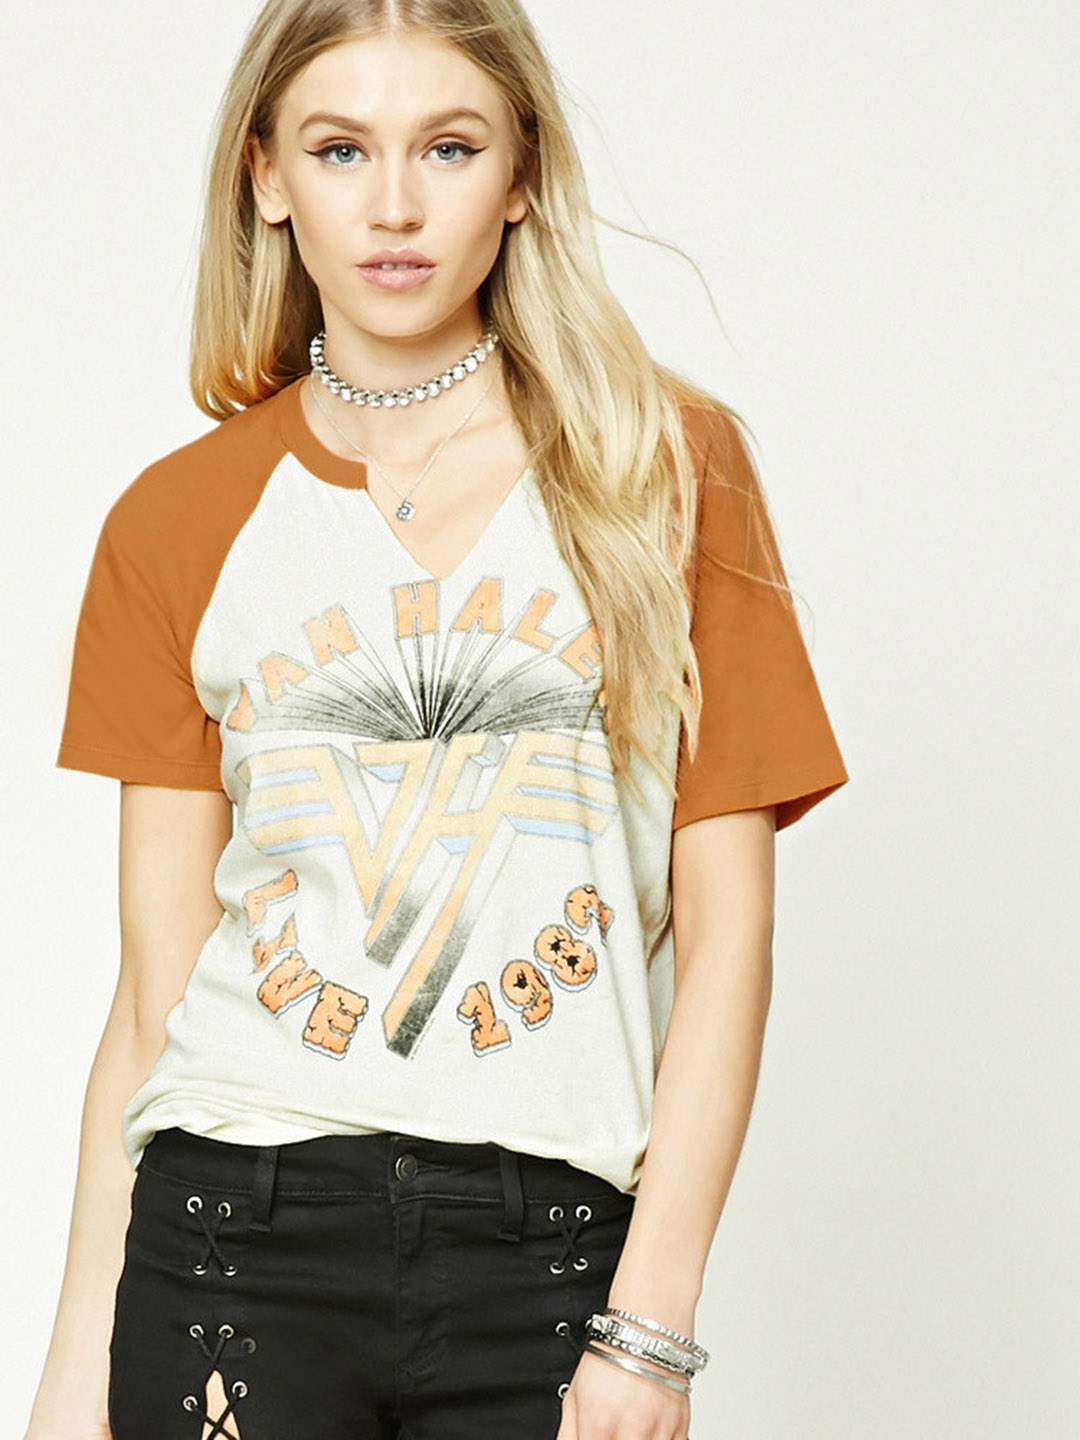 820525c0ffd3 FOREVER 21 Women Cream-Coloured & Mustard Yellow Printed Round Neck T-shirt